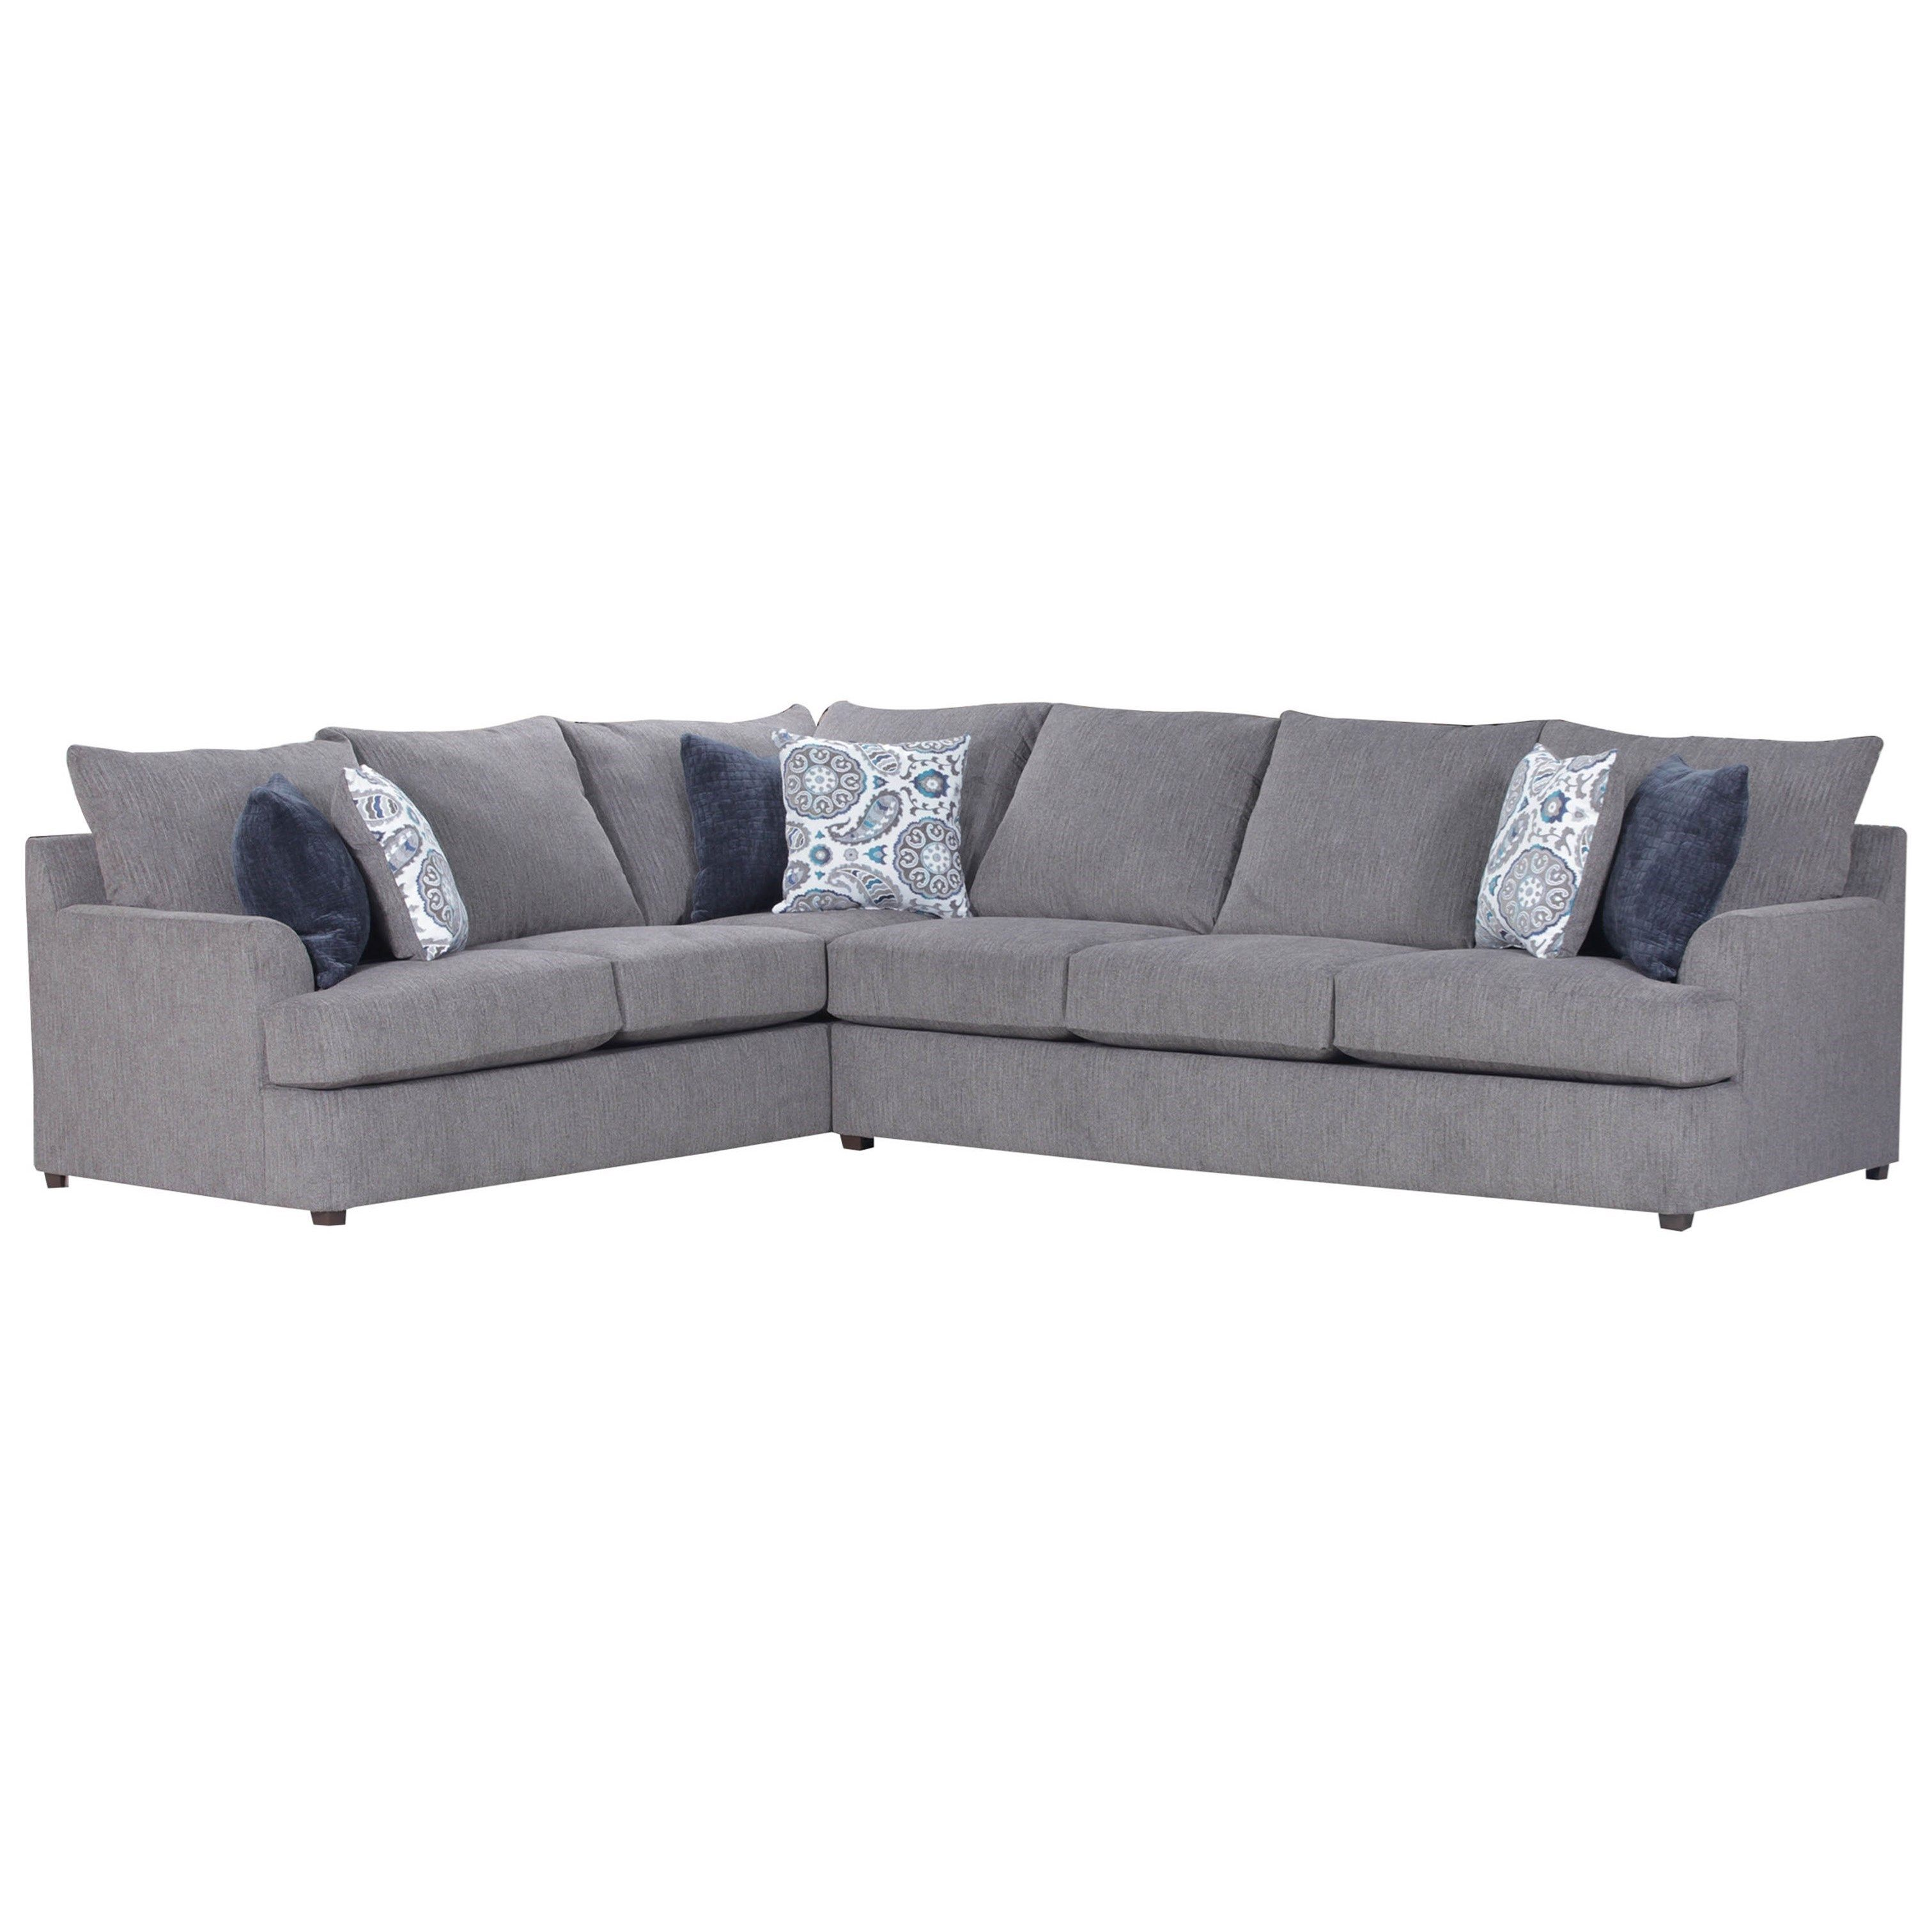 8540BR Casual Sectional Sofa by United Furniture Industries